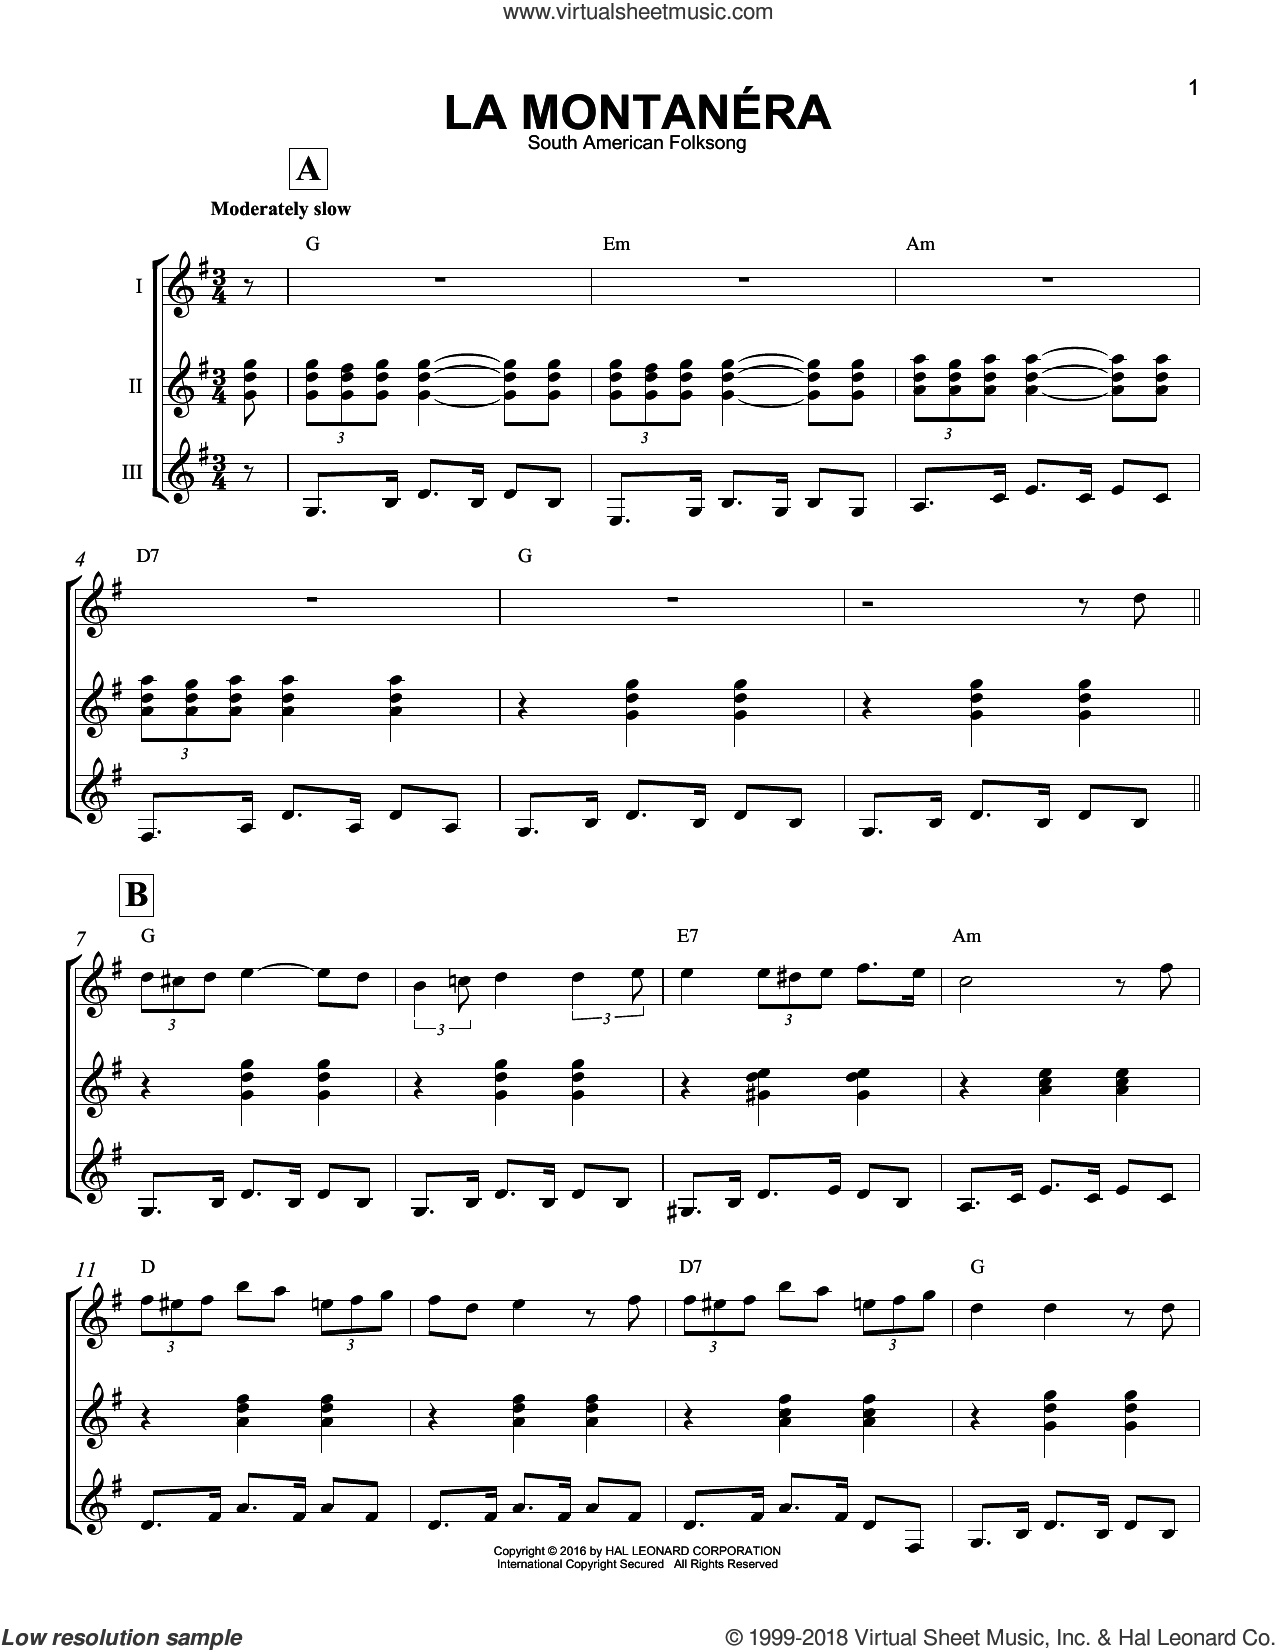 La Montanera sheet music for guitar ensemble by South American Folksong, intermediate skill level